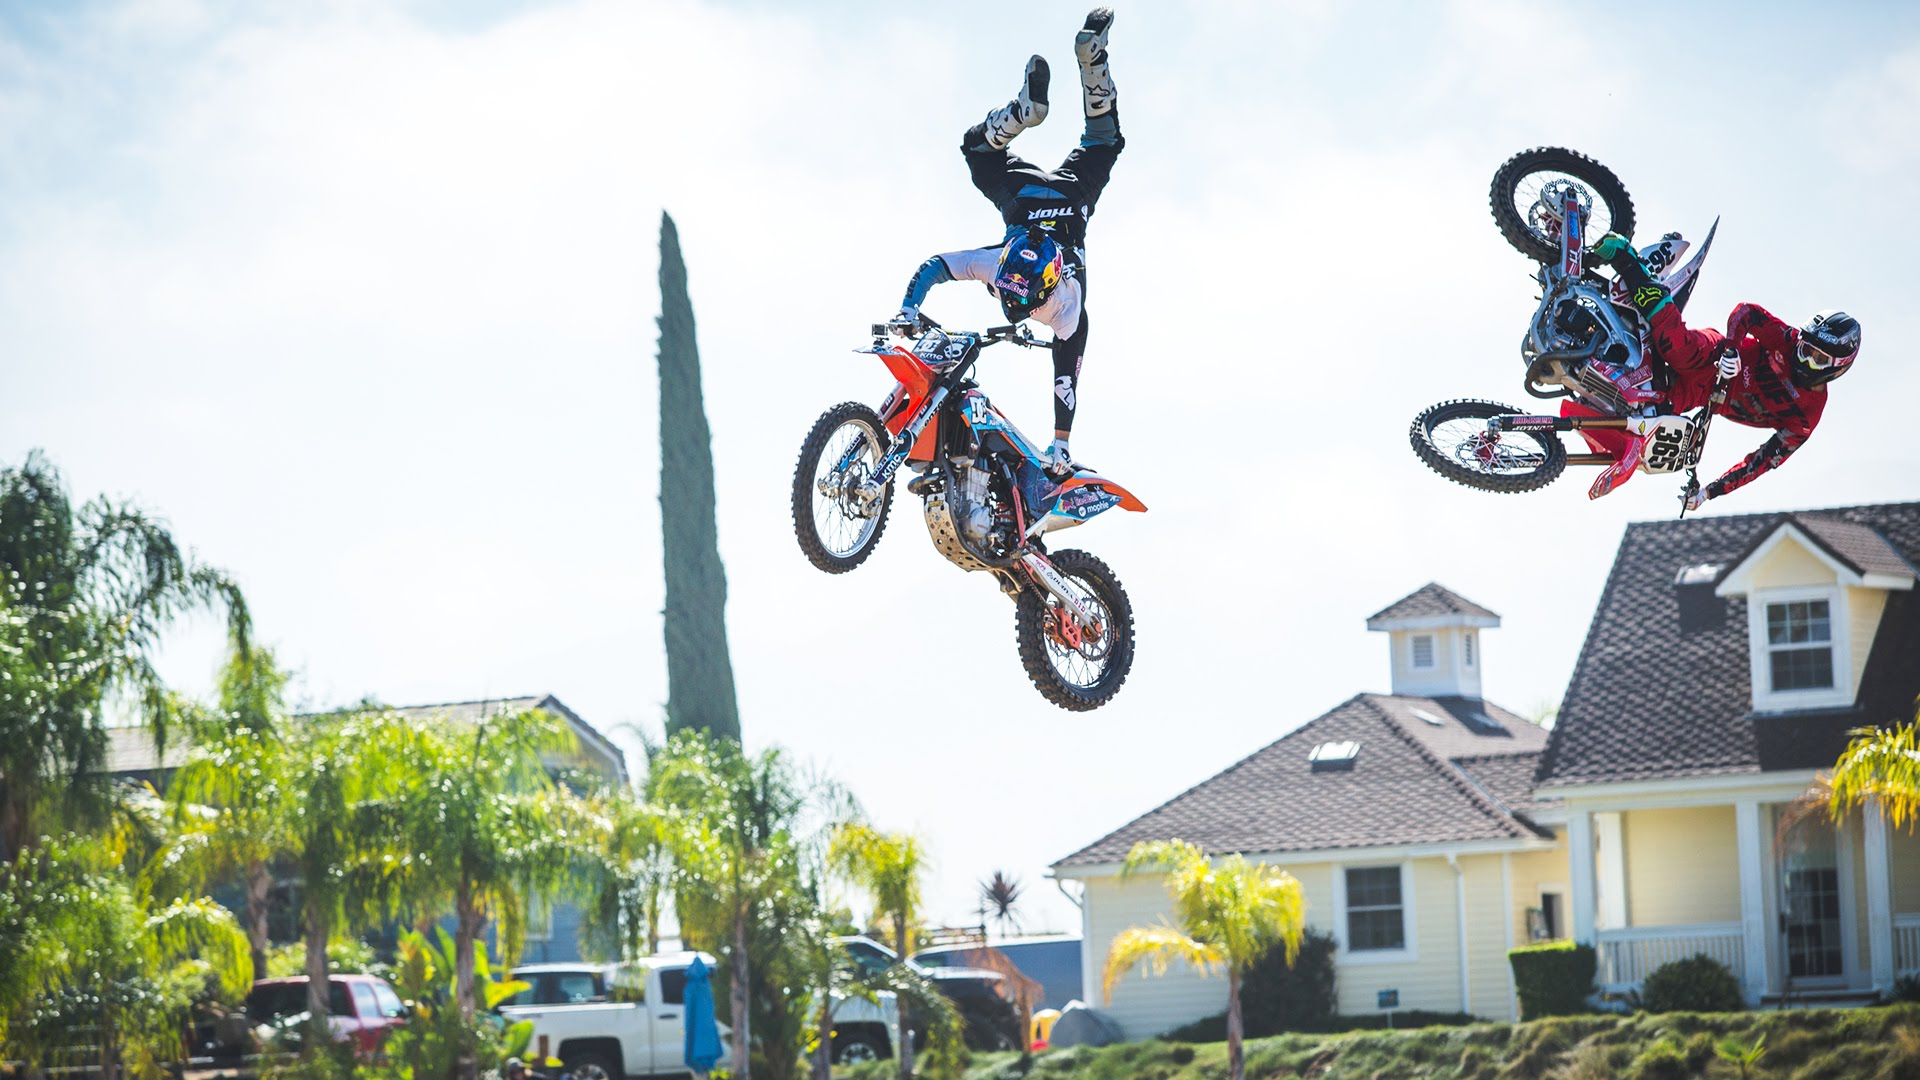 Brett Cue ALL IN - Riding with Twitch & Robbie Maddison